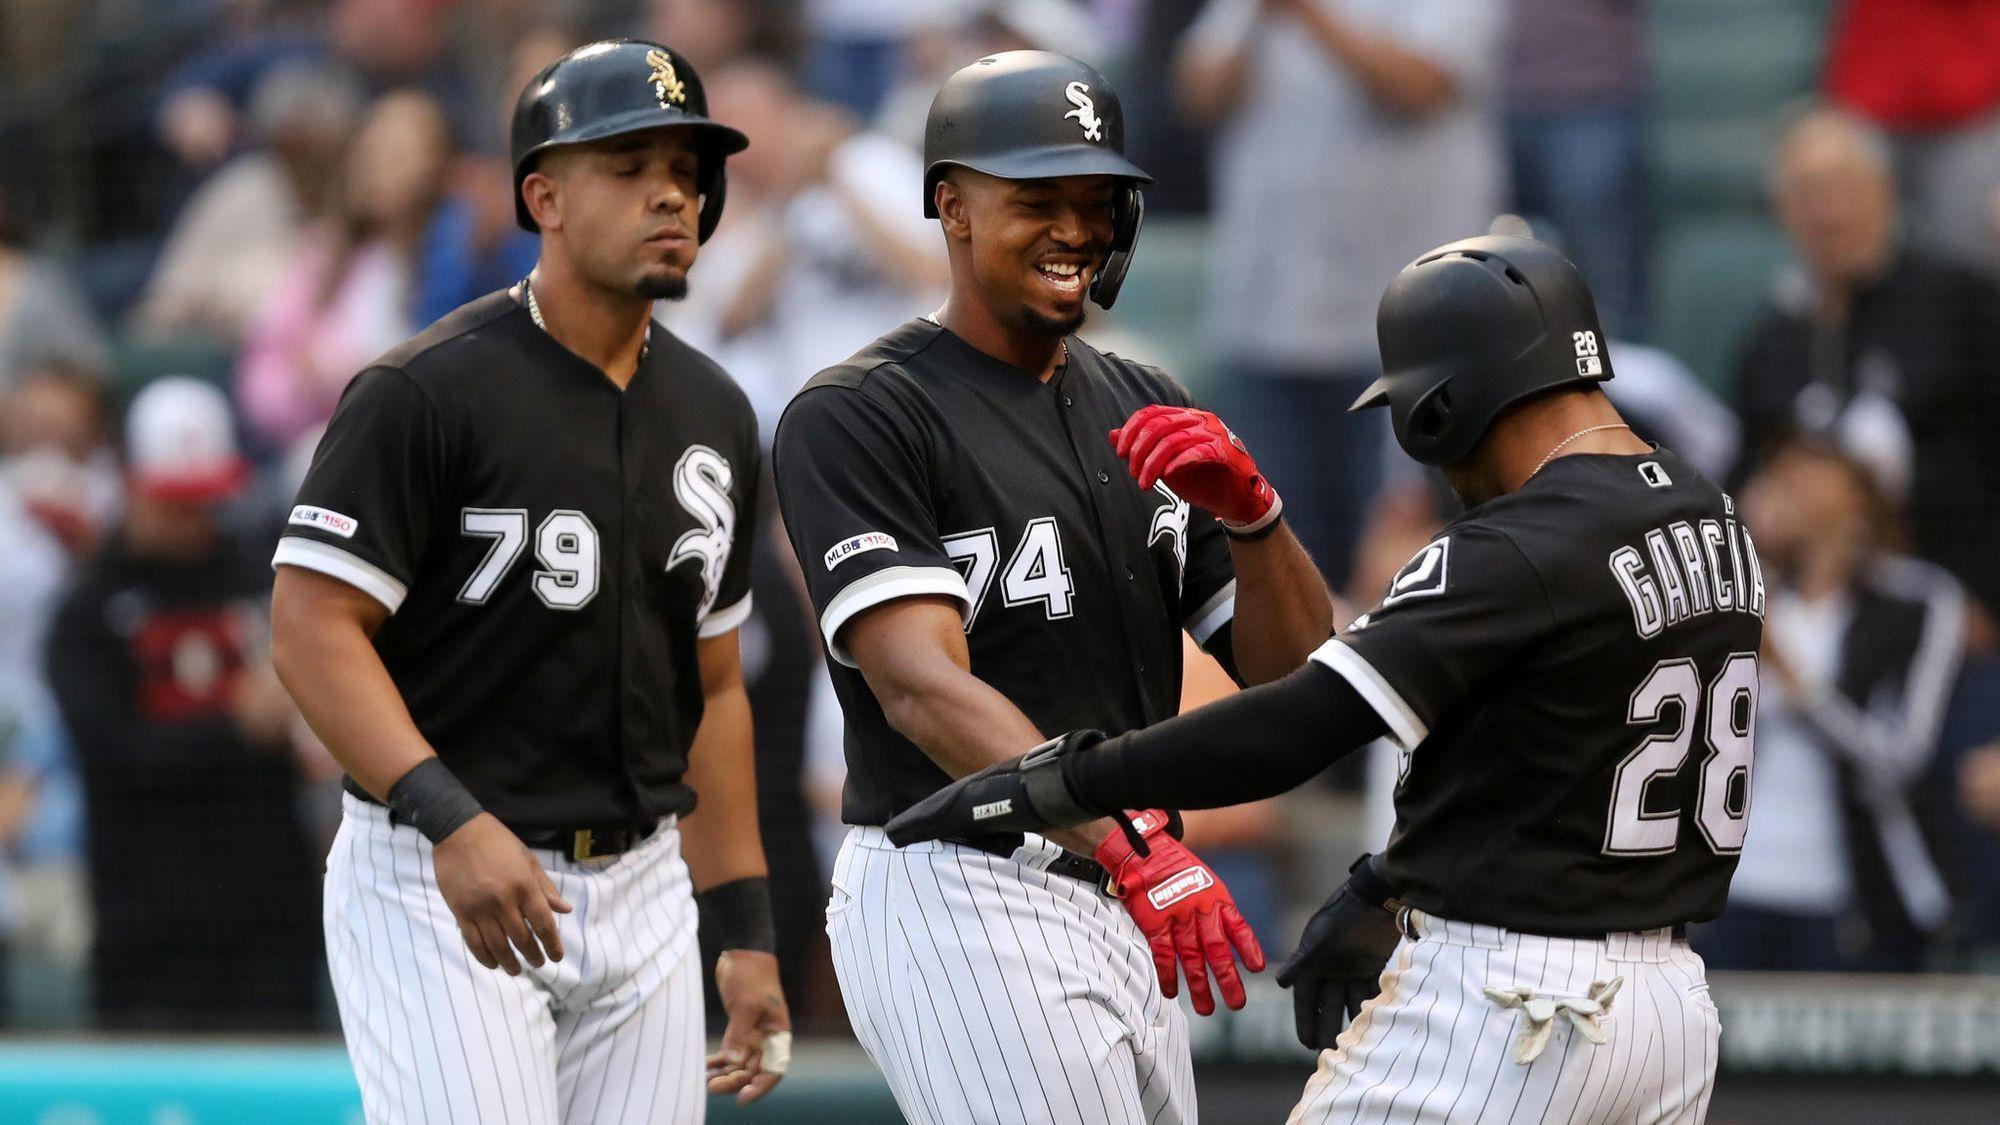 'I feel really good': Eloy Jimenez is starting to show his power for the White Sox